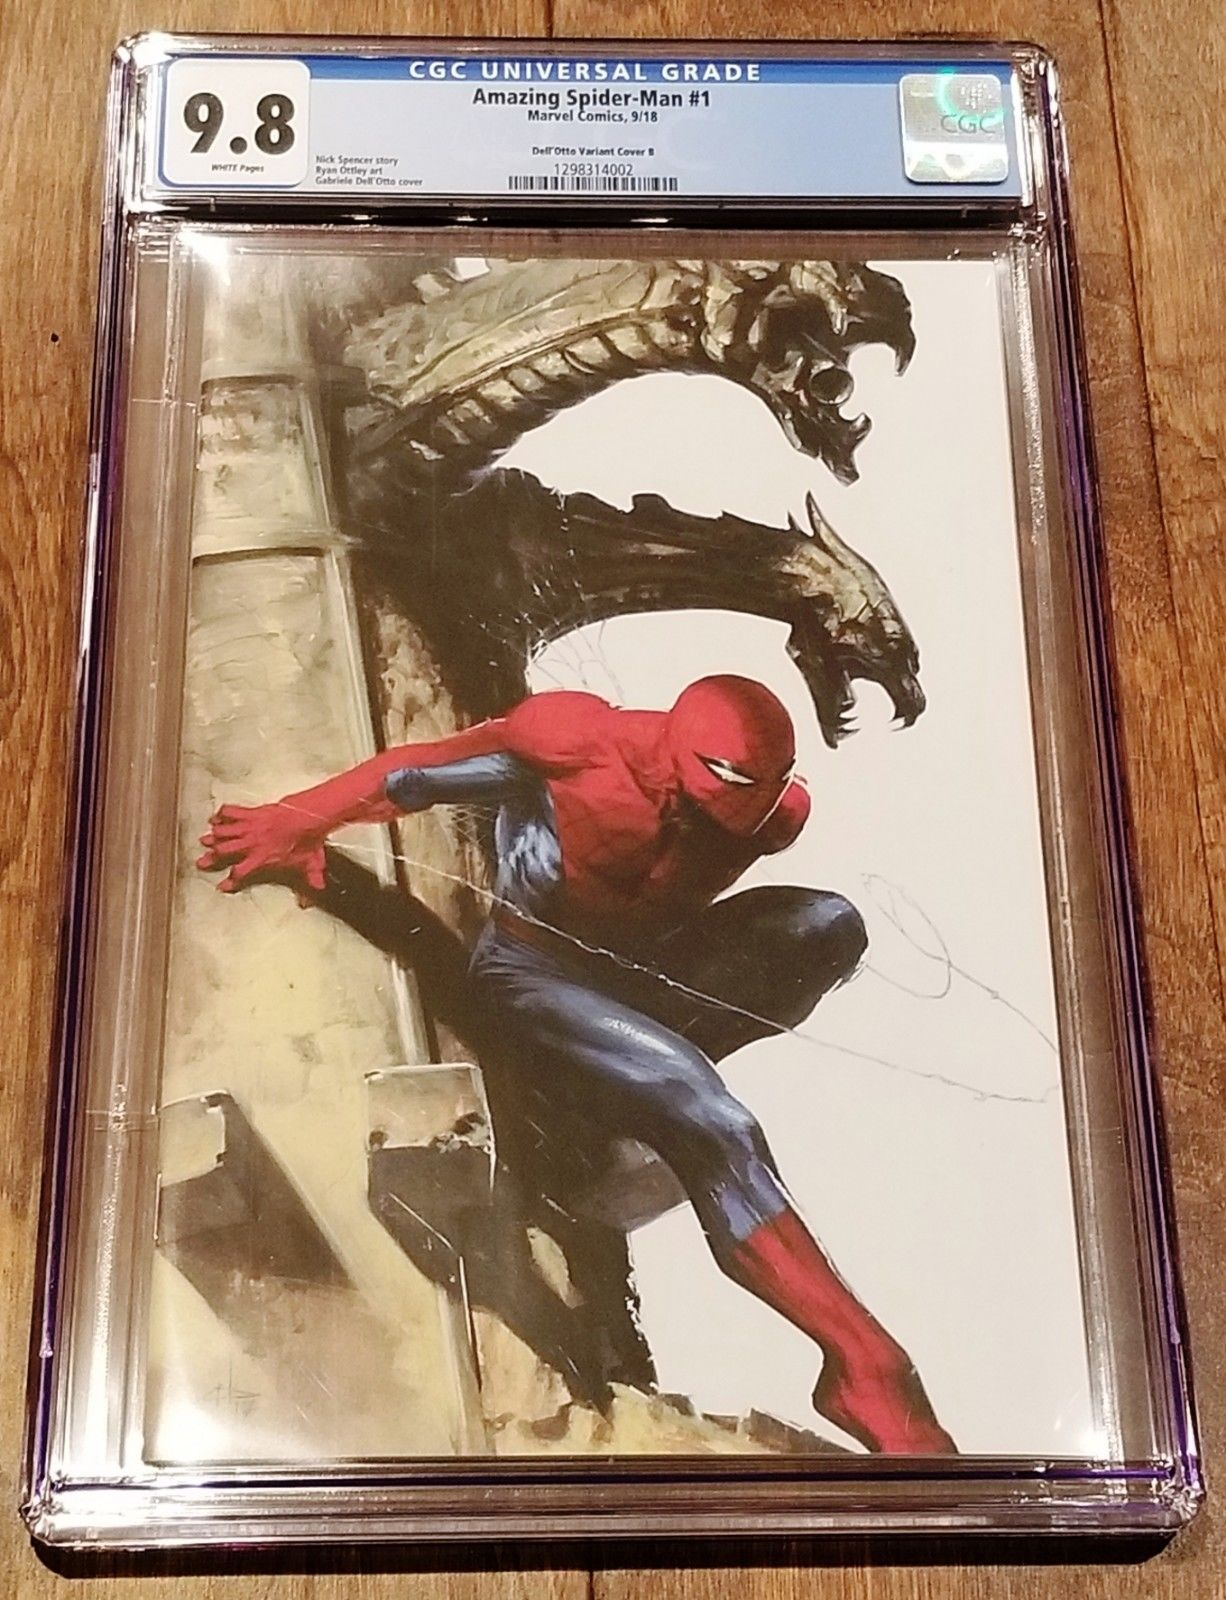 AMAZING SPIDER-MAN #1 CGC 9.8 DELL OTTO COMICXPOSURE VIRGIN VARIANT 1st KINDRED